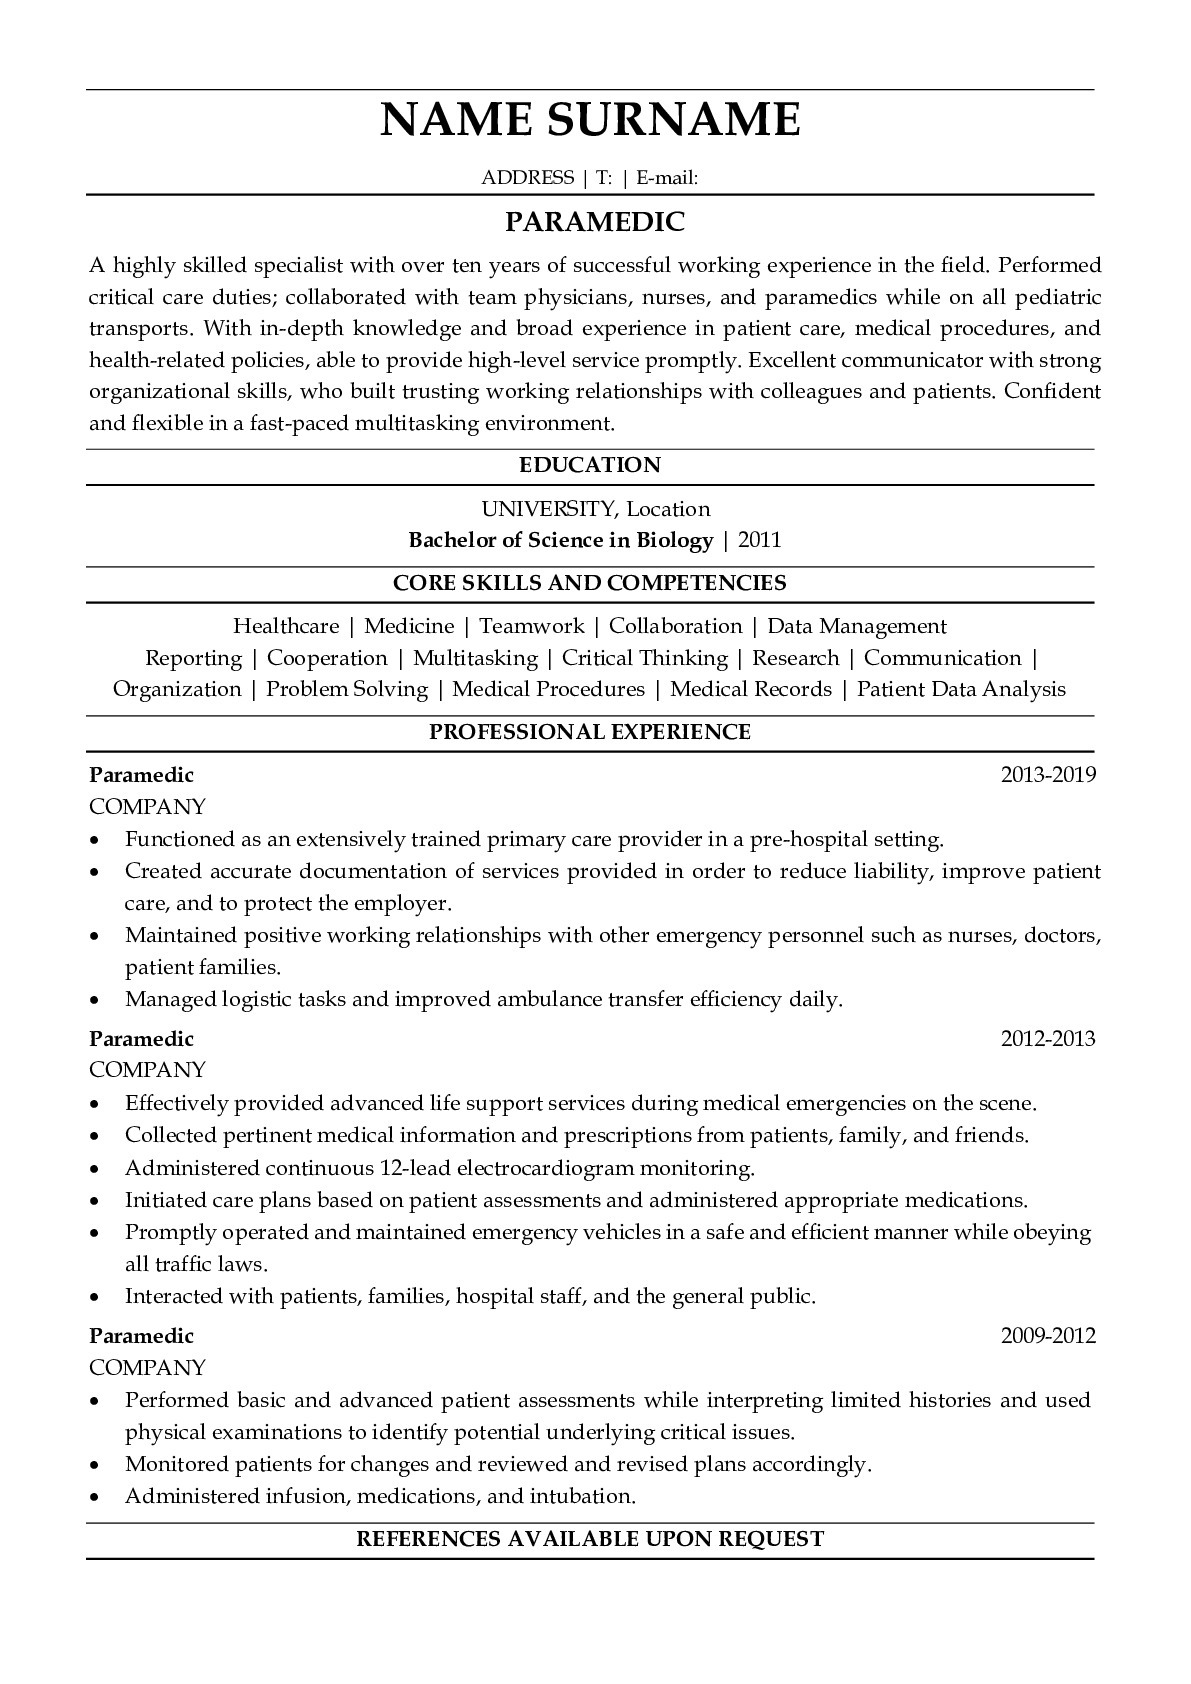 Resume Example for Paramedic